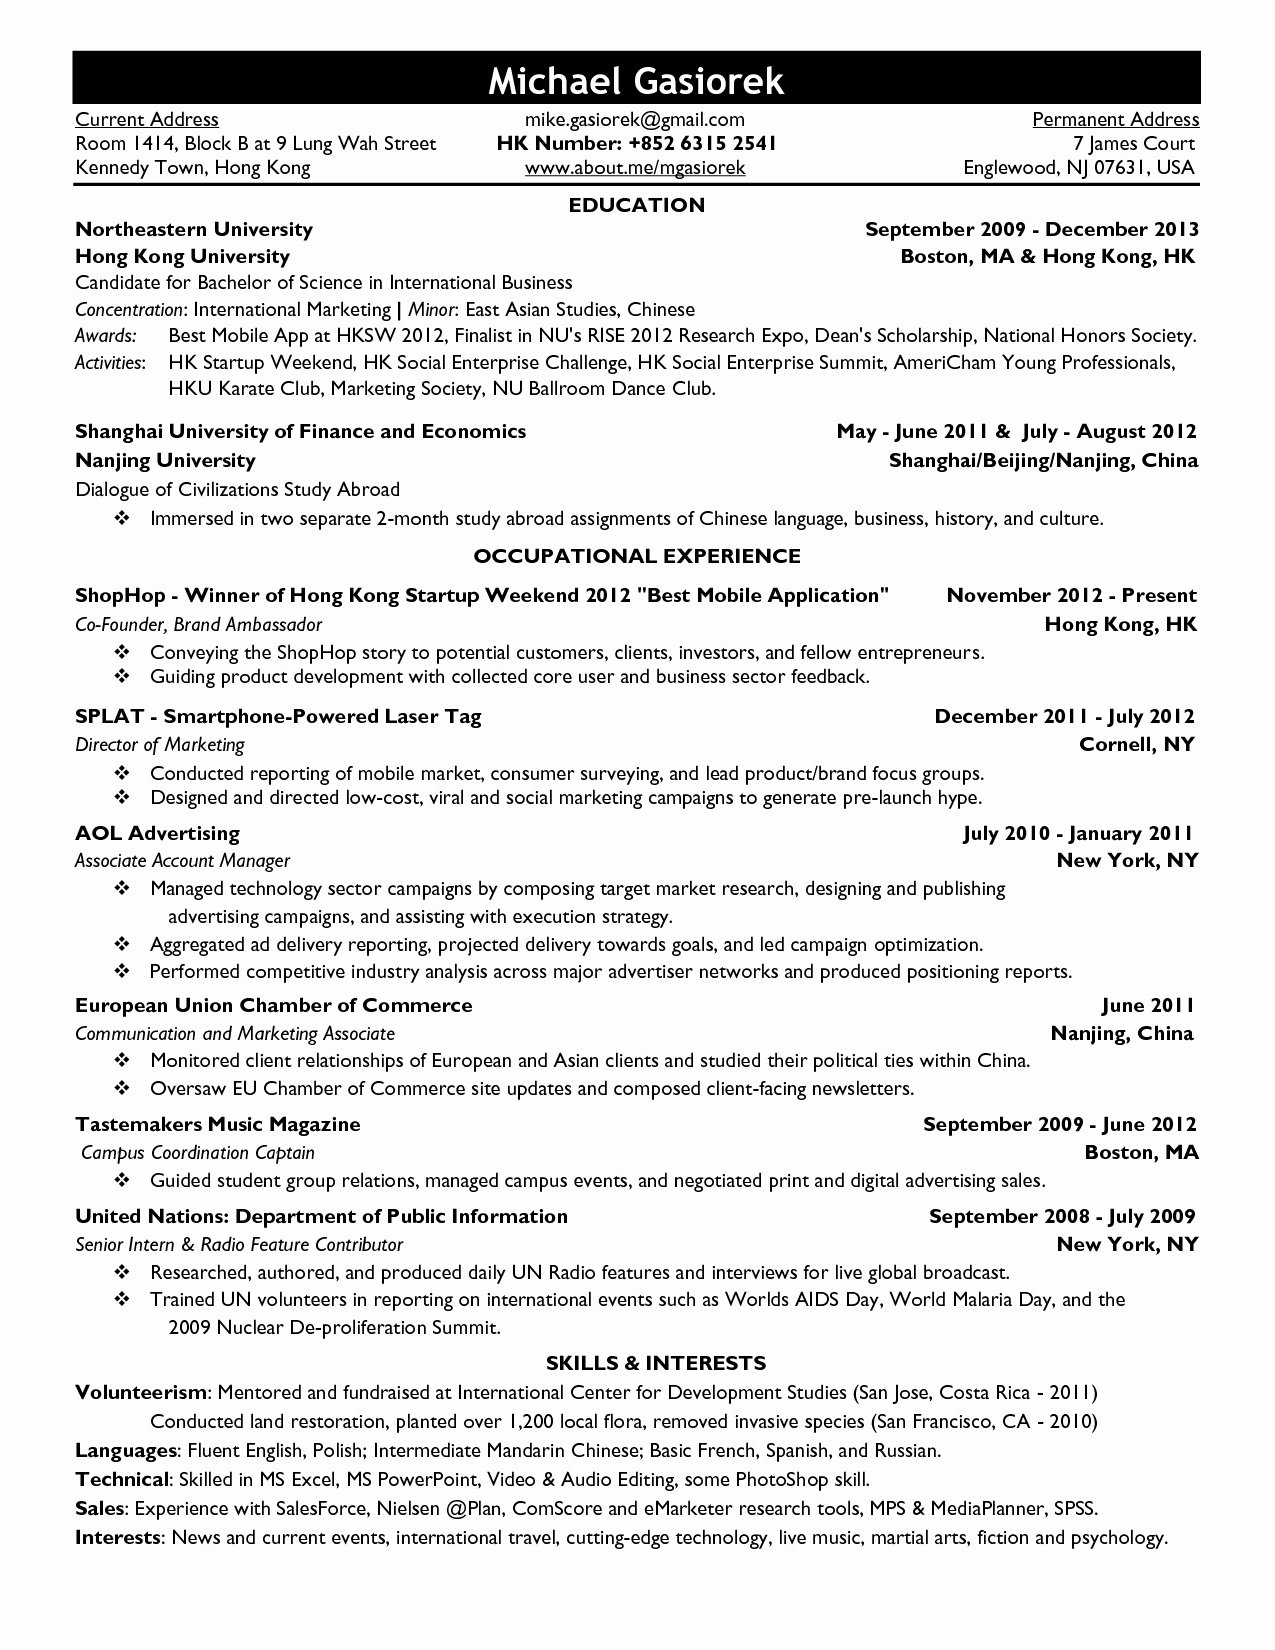 Resume Template Professional 2013 with Regard to